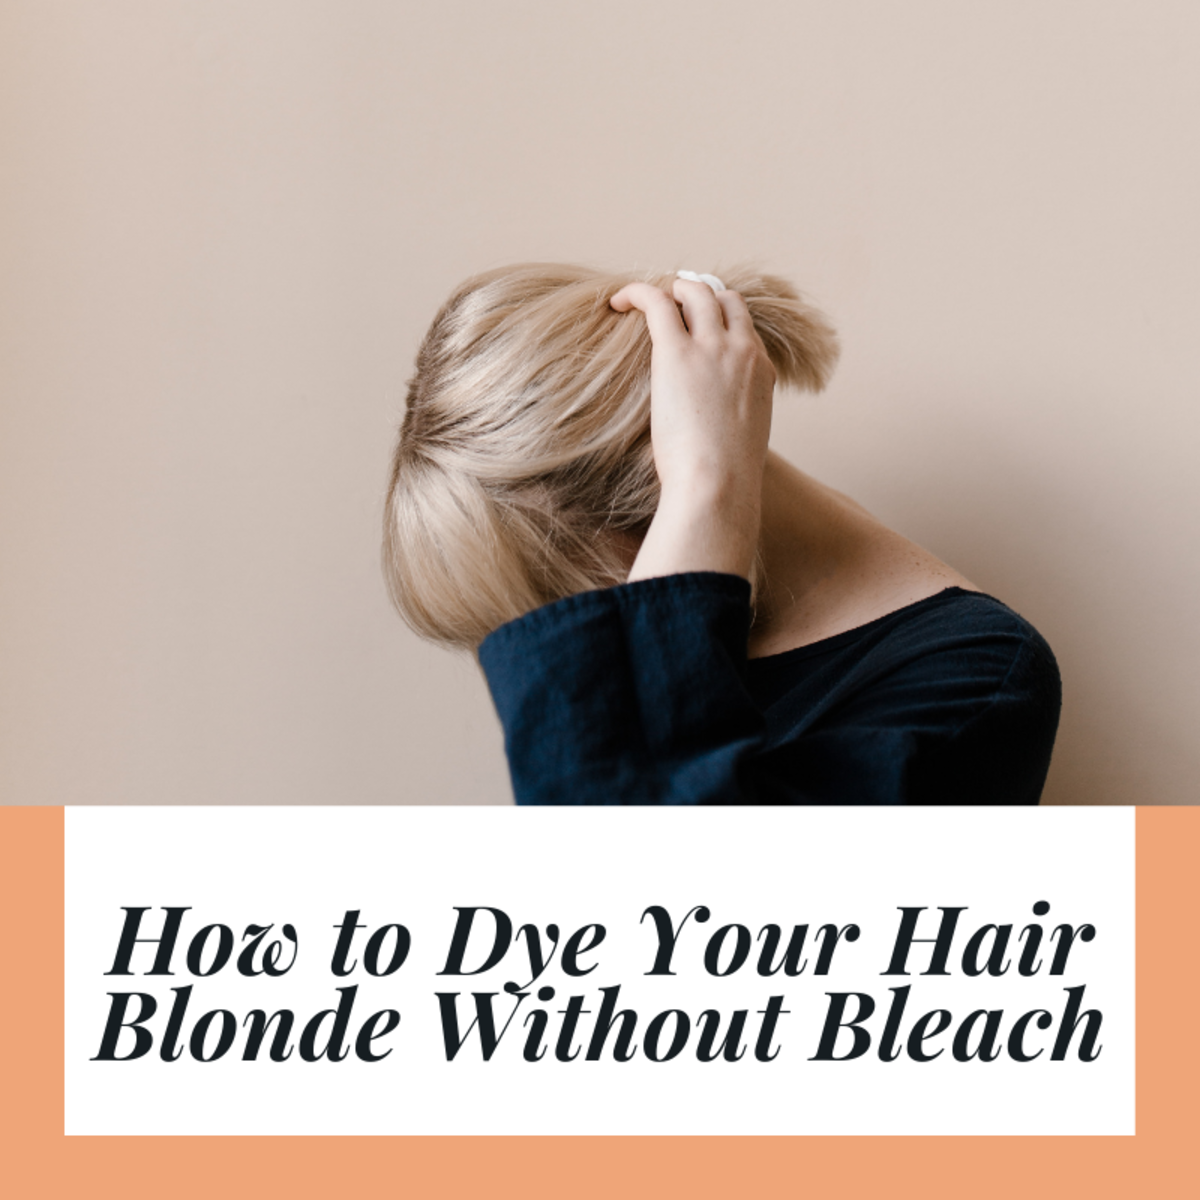 How to Dye Your Hair Blonde Without Bleach